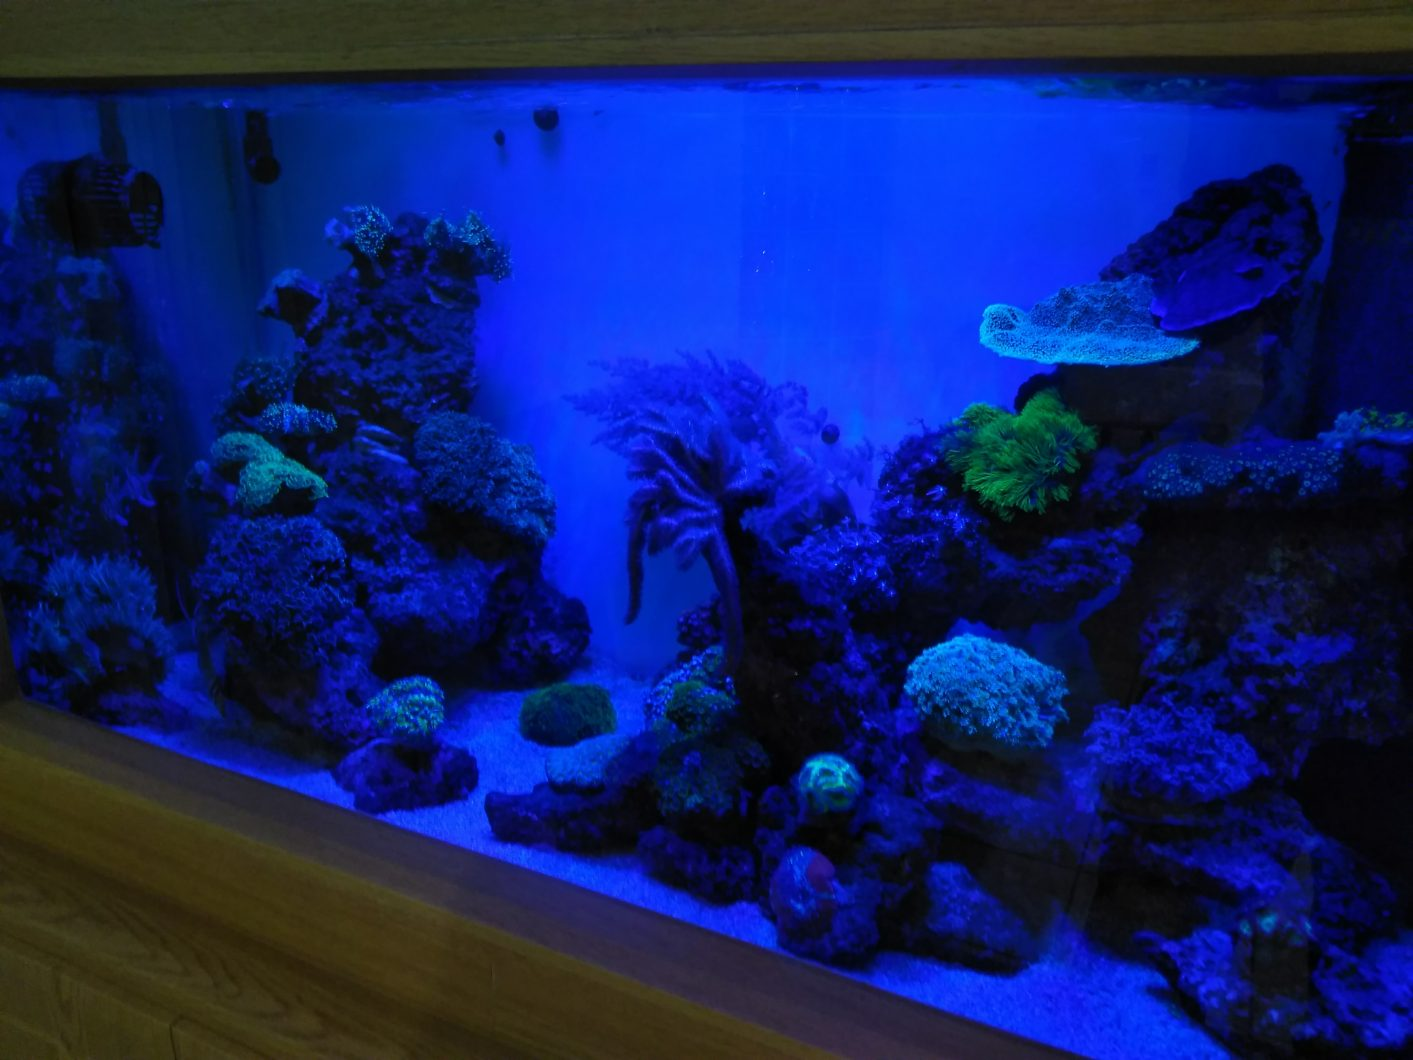 moonlight-LED-aquarium-light